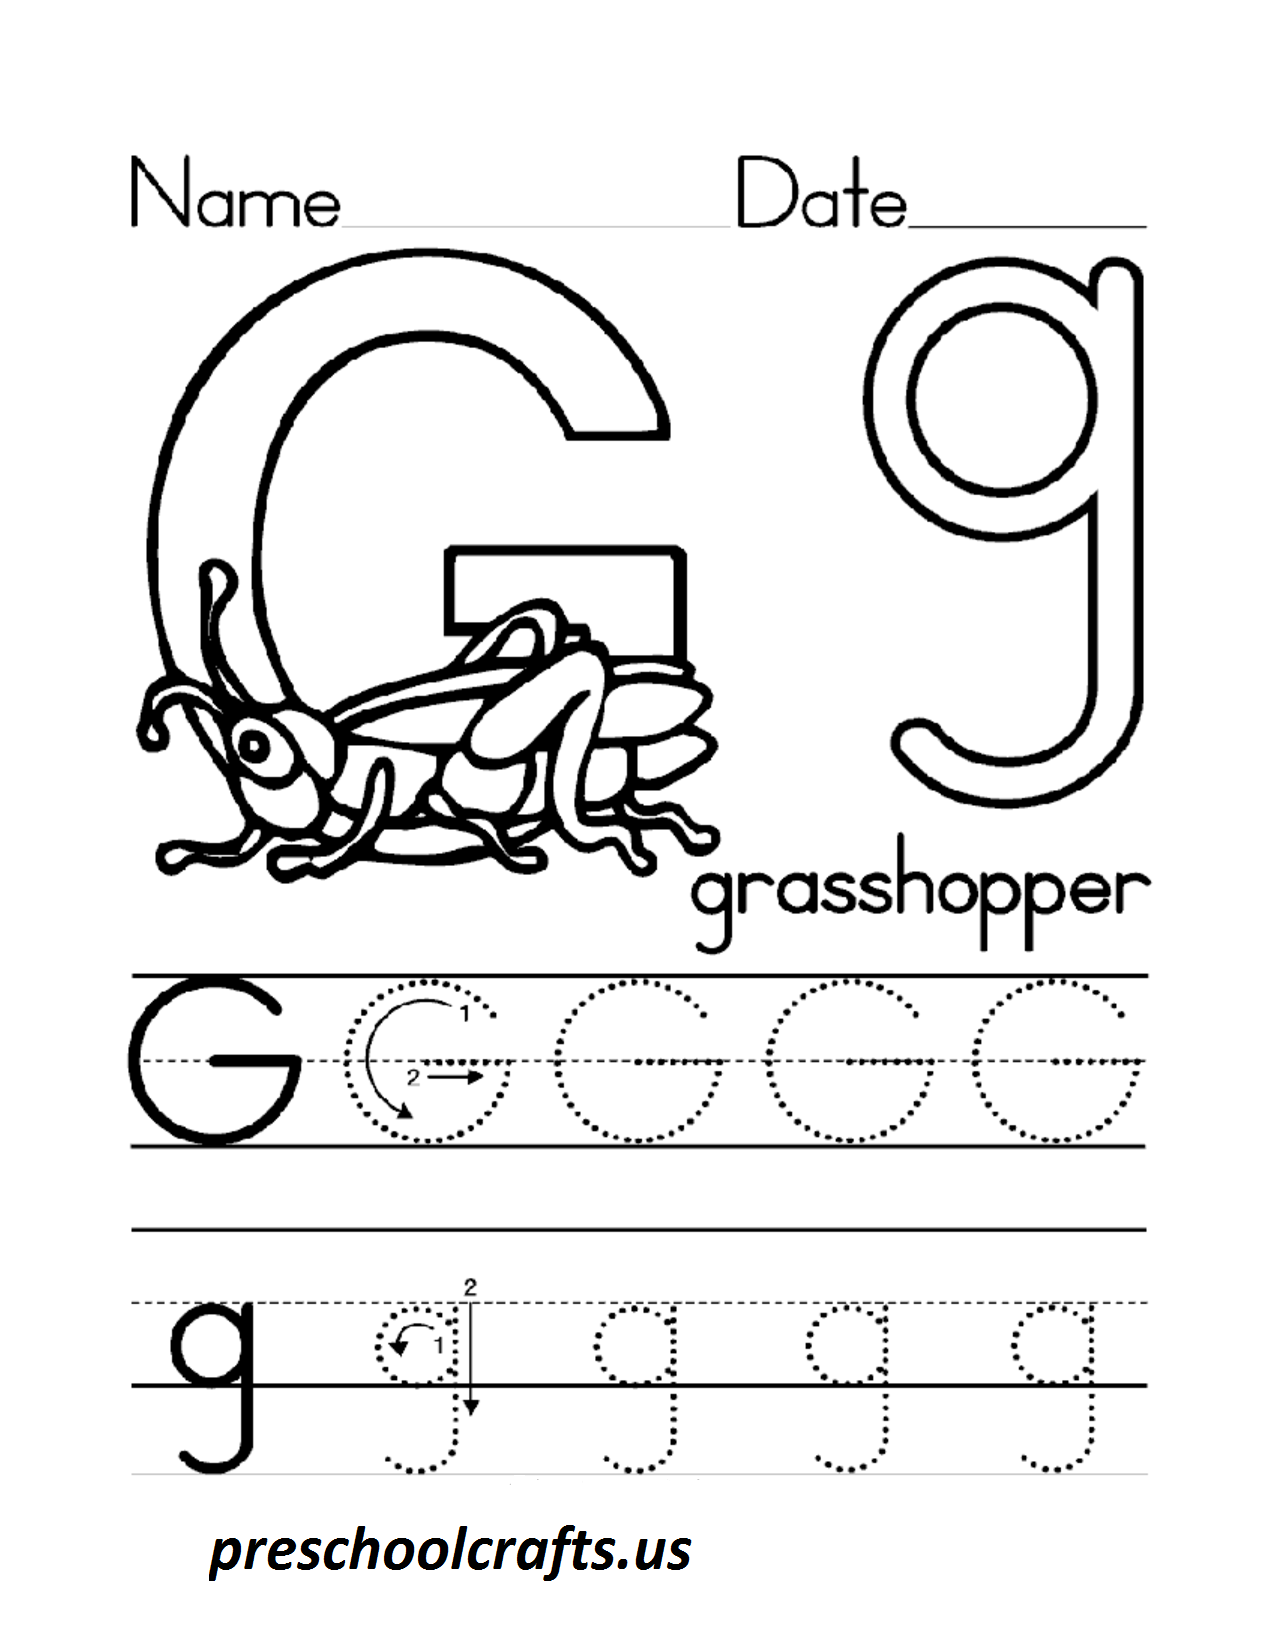 G Worksheets For Preschool